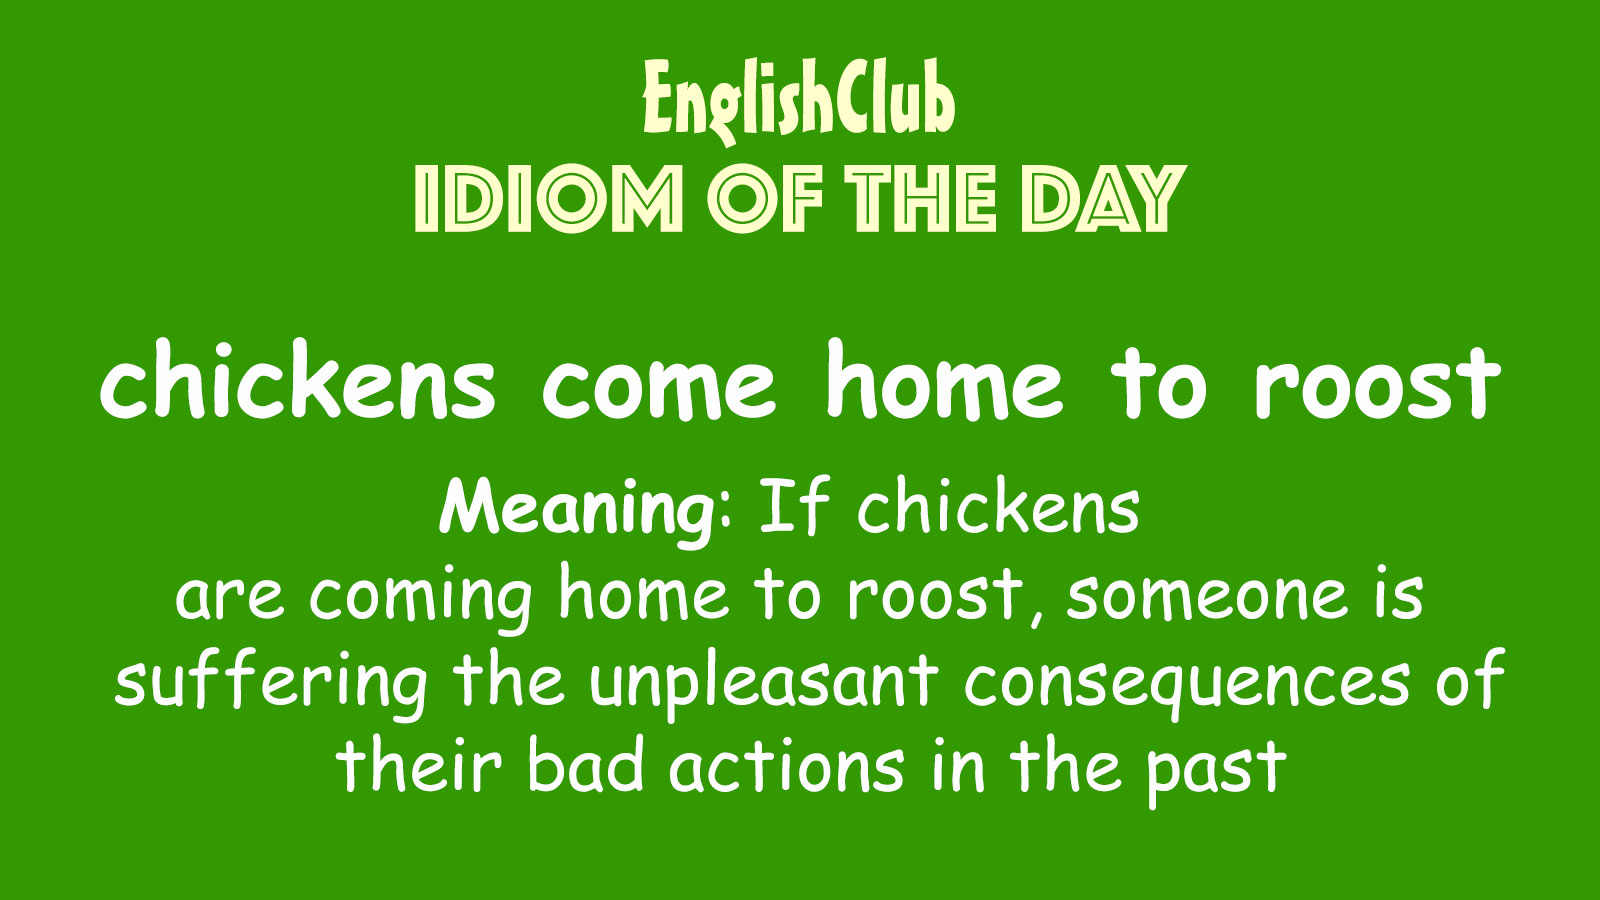 chickens-come-home-to-roost.jpg